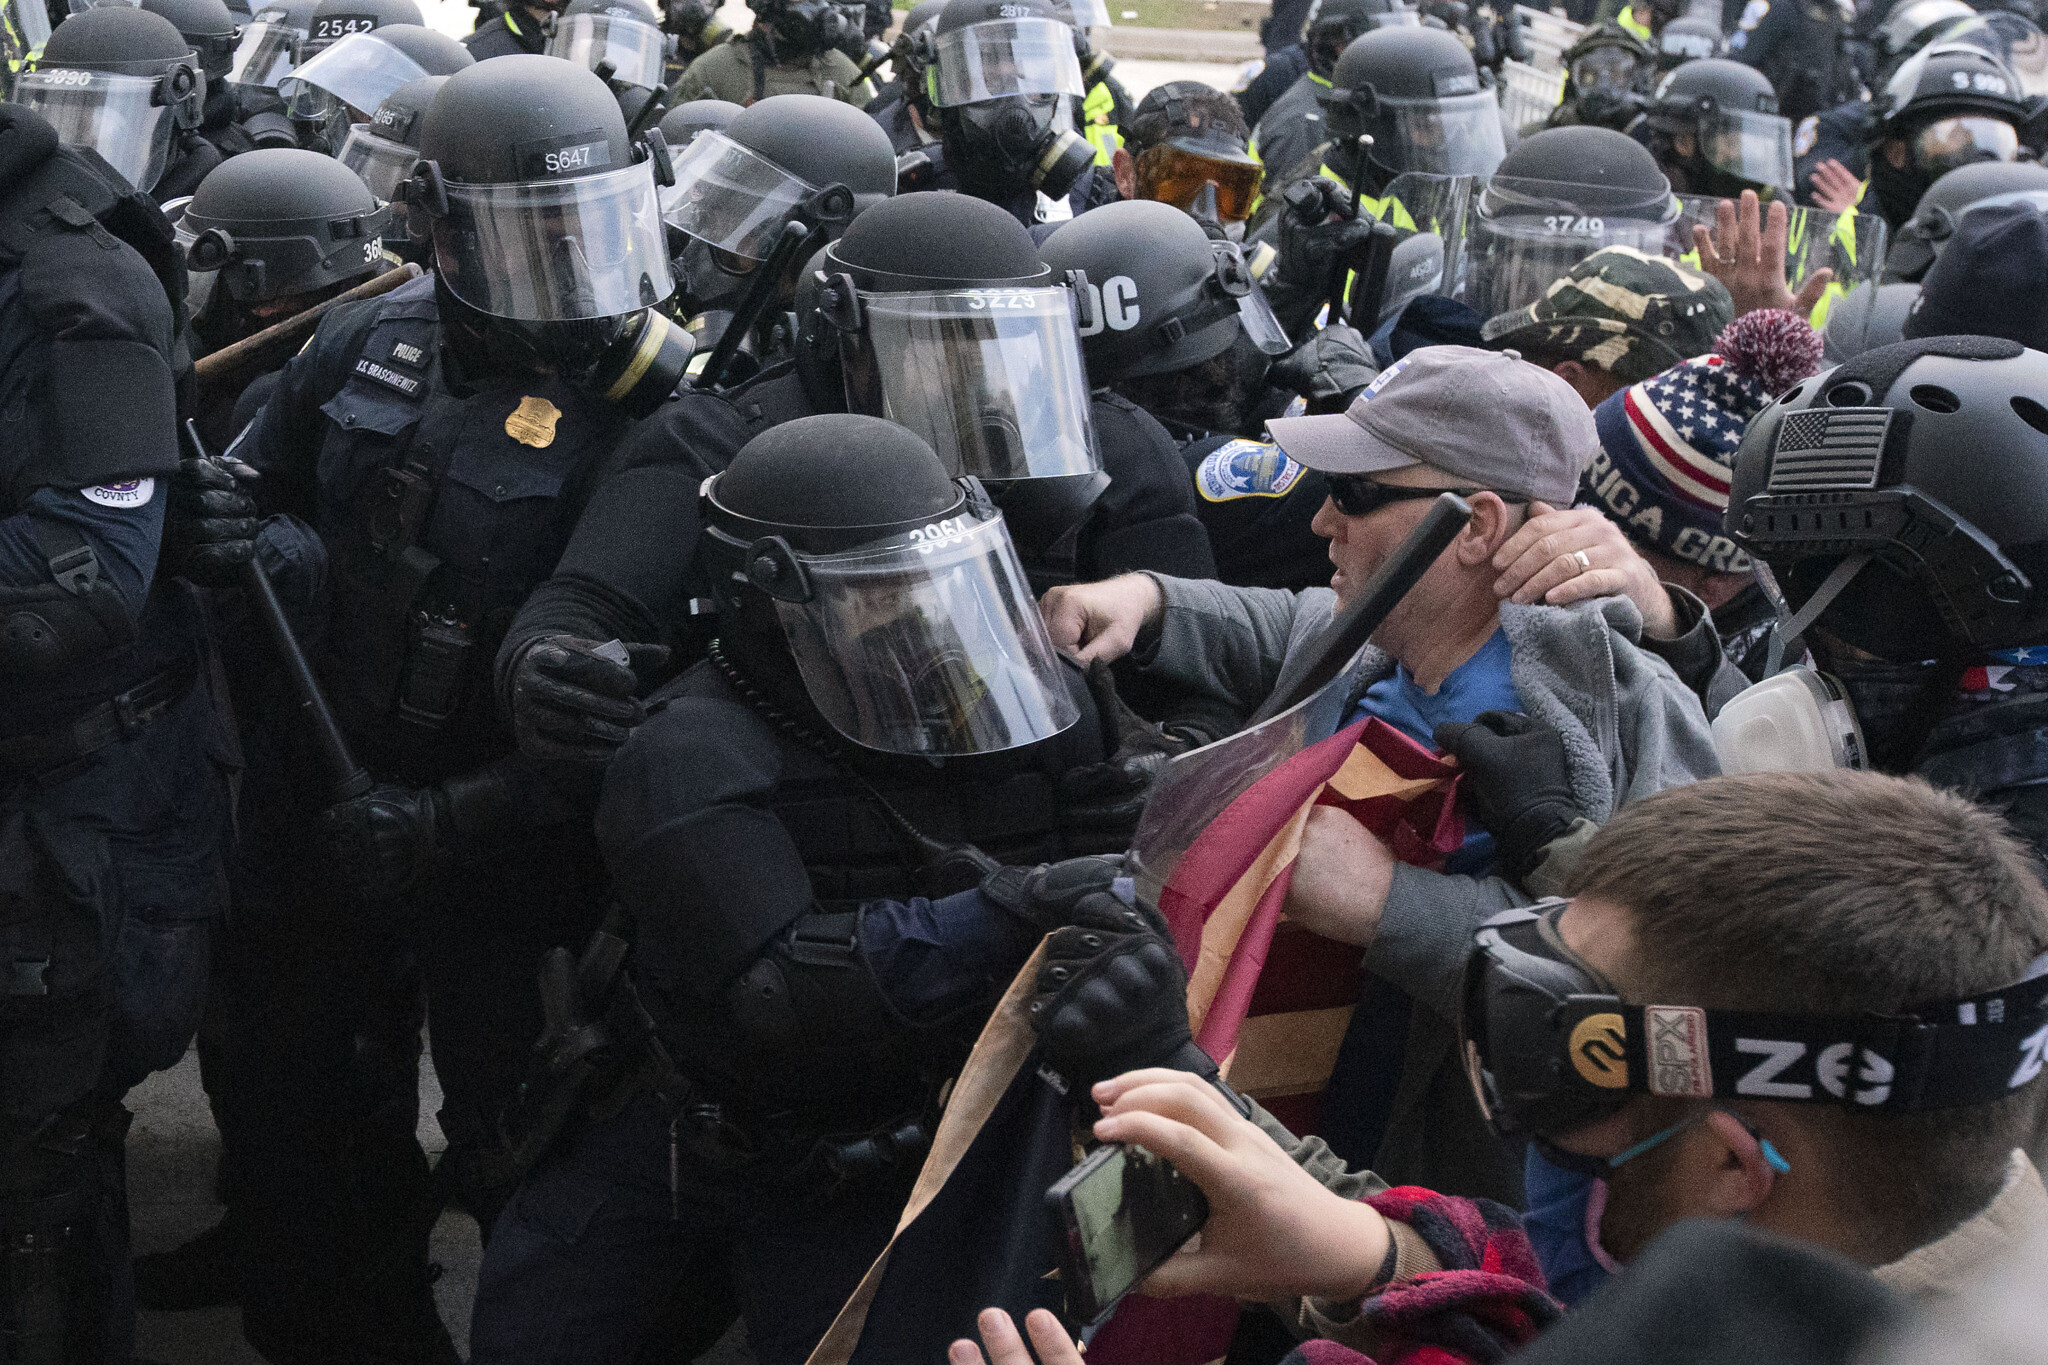 Video shows Capitol Police cop getting crushed by protesters